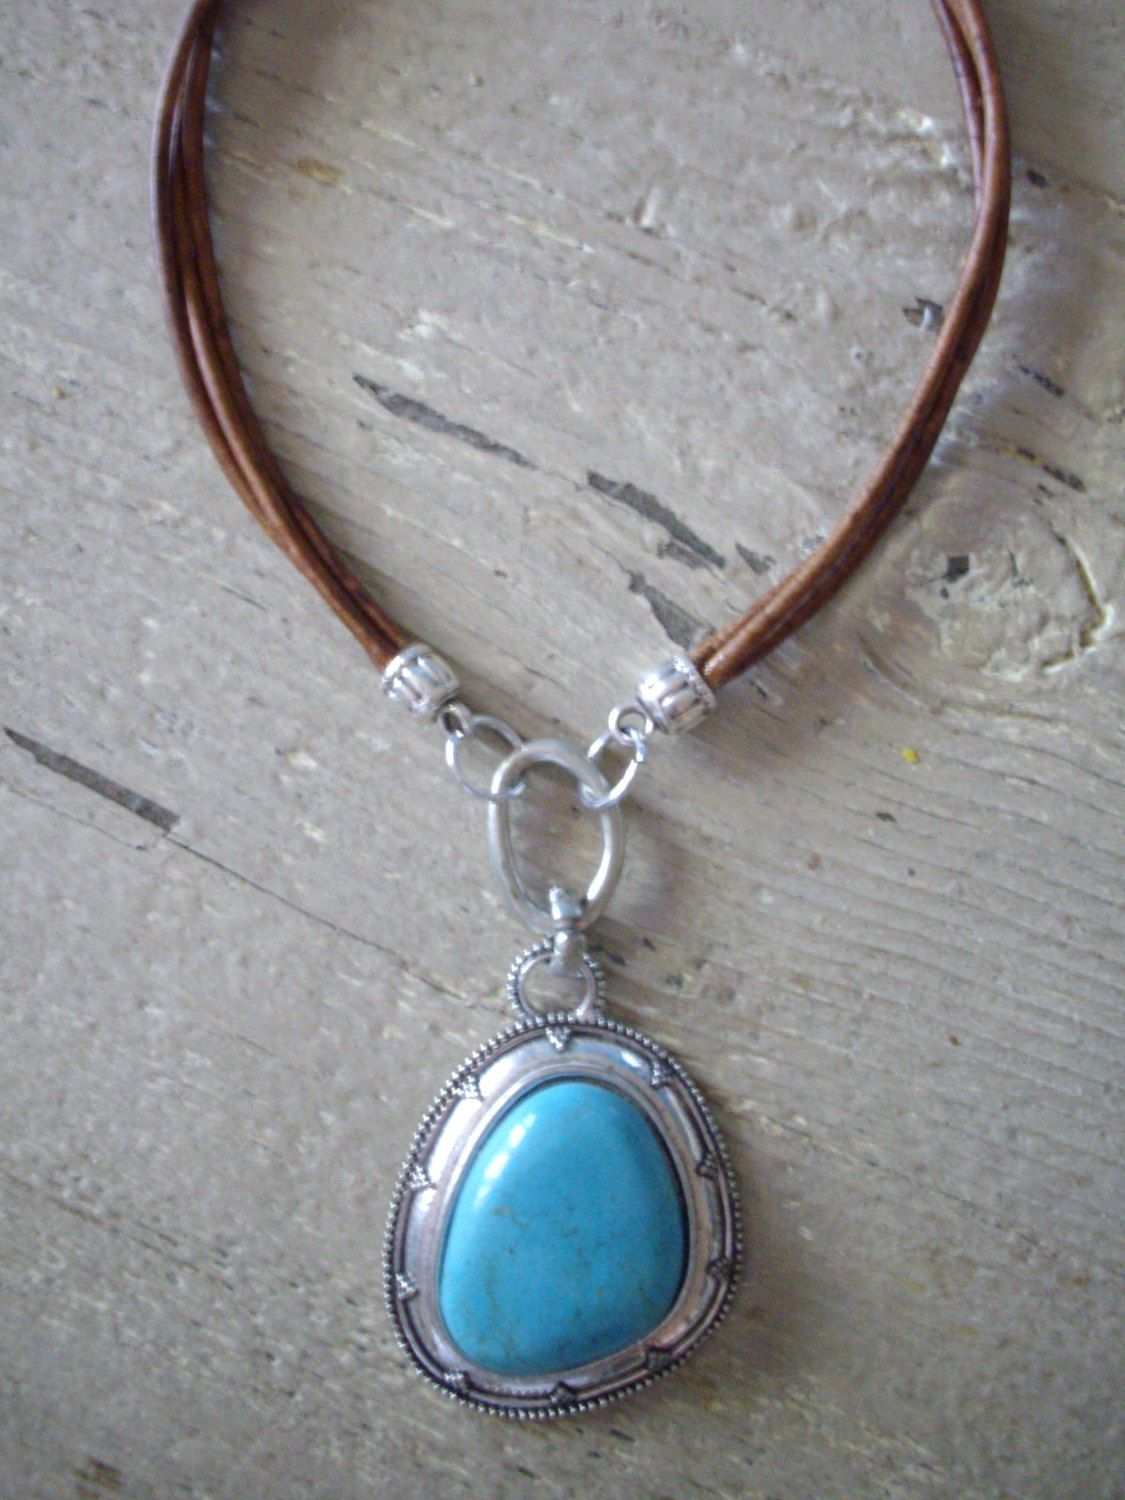 Triple Strand 3mm Distressed Brown Leather Necklace with Extra Large Silver Pendant with Turquoise Inlay by DesignsbyPattiLynn on Etsy